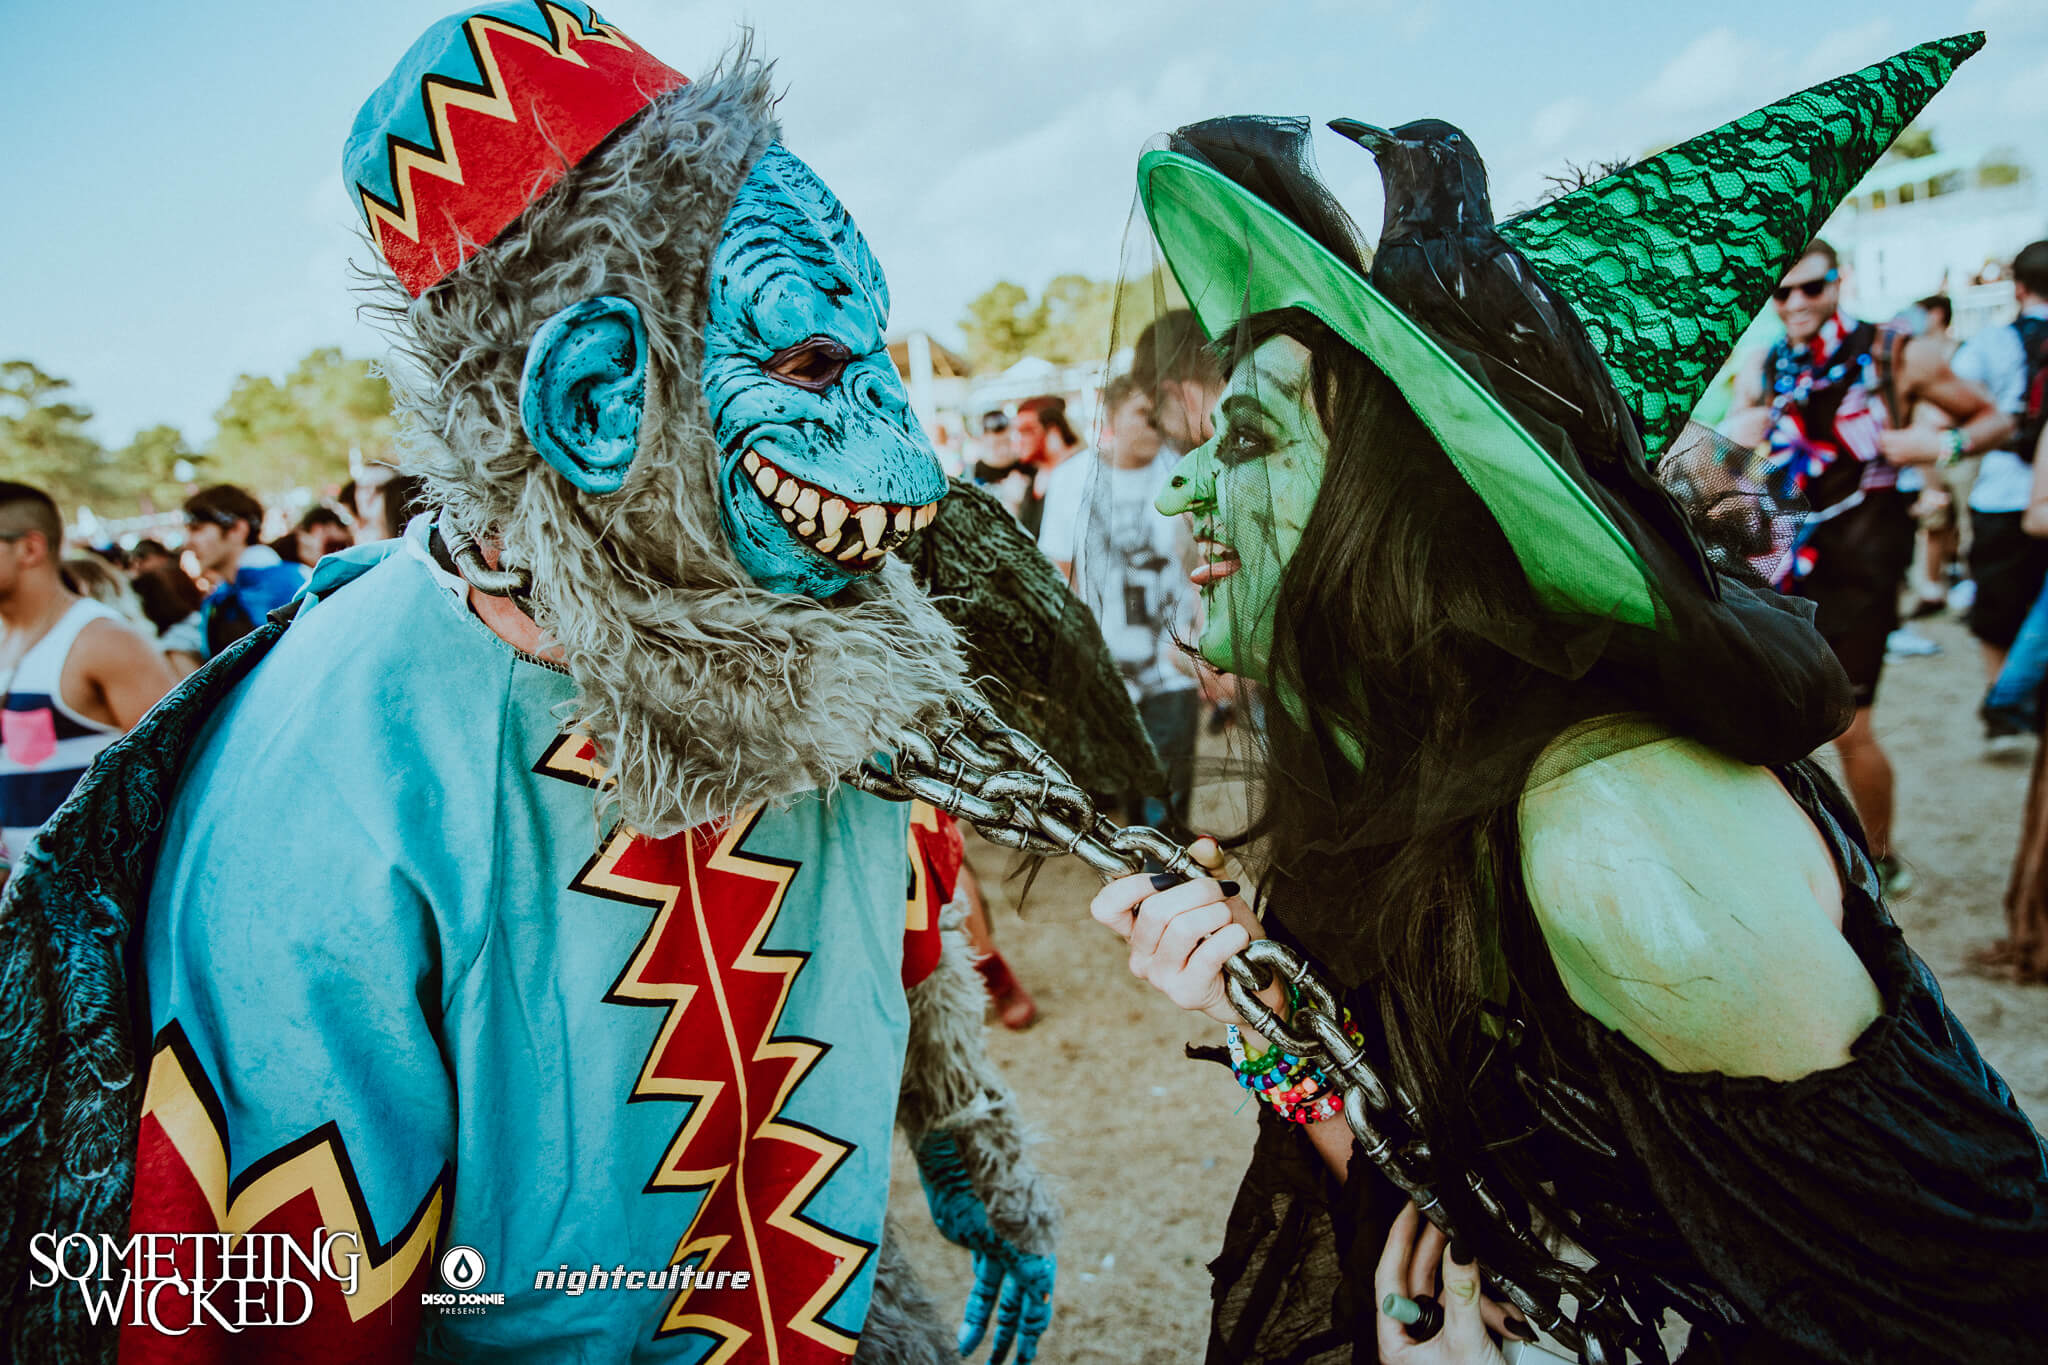 wicked witch of the west at something wicked festival